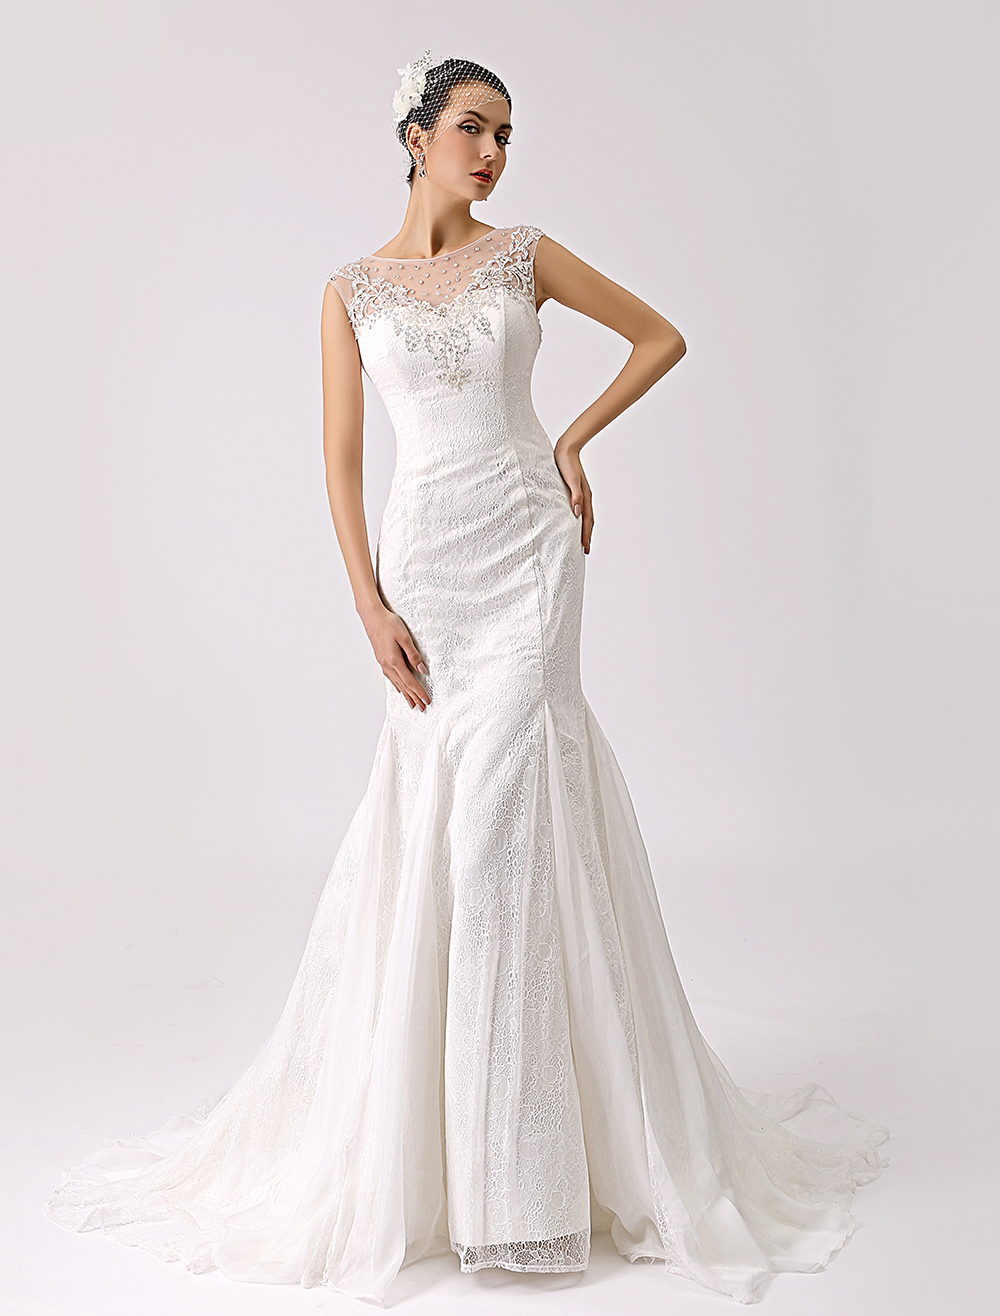 Illusion Jewel Neck Fit and Flare Lace Wedding Dress with Beads Milanoo